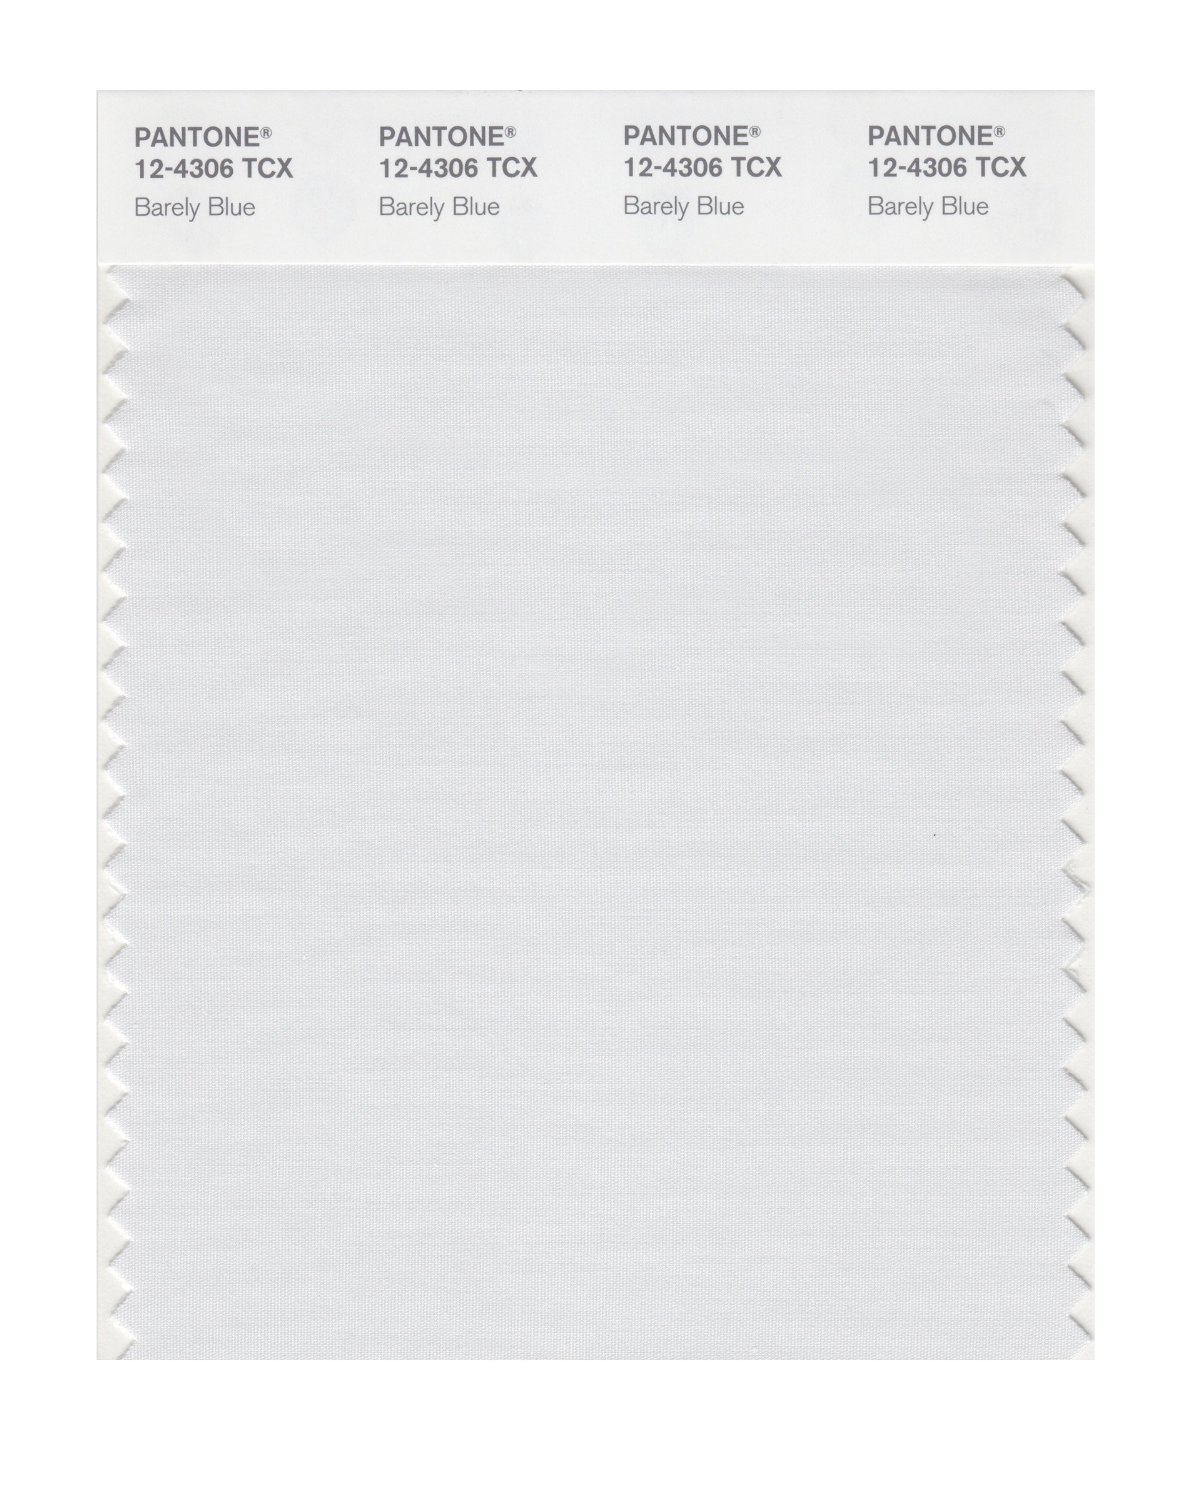 Pantone Smart Swatch 12-4306 Barely Blue